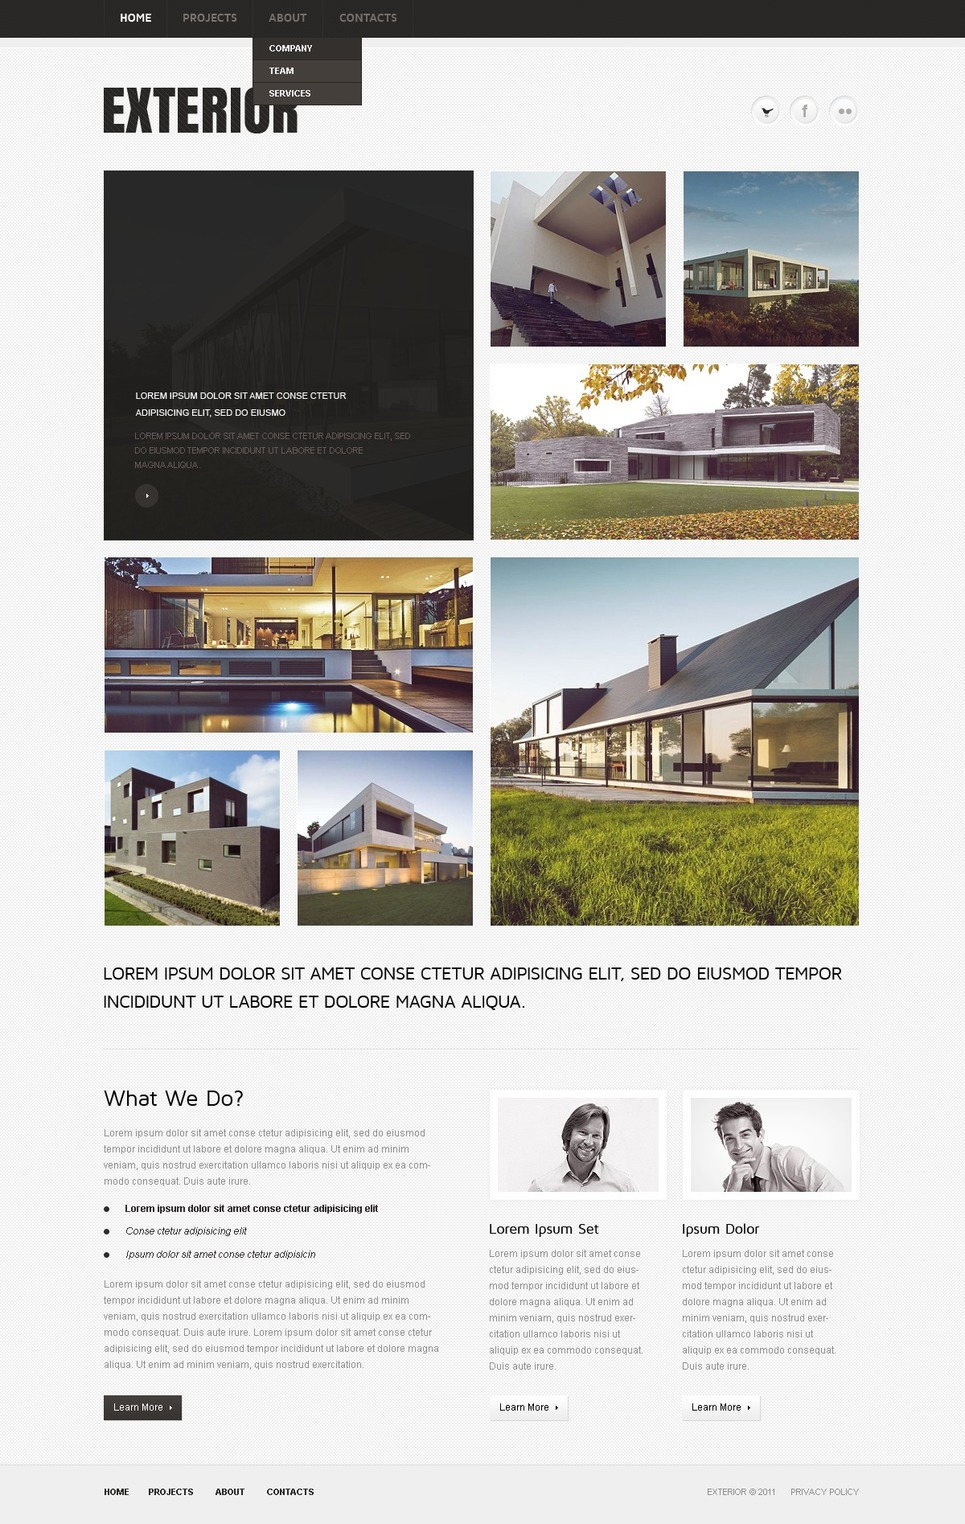 Exterior Design Website Template New Screenshots BIG